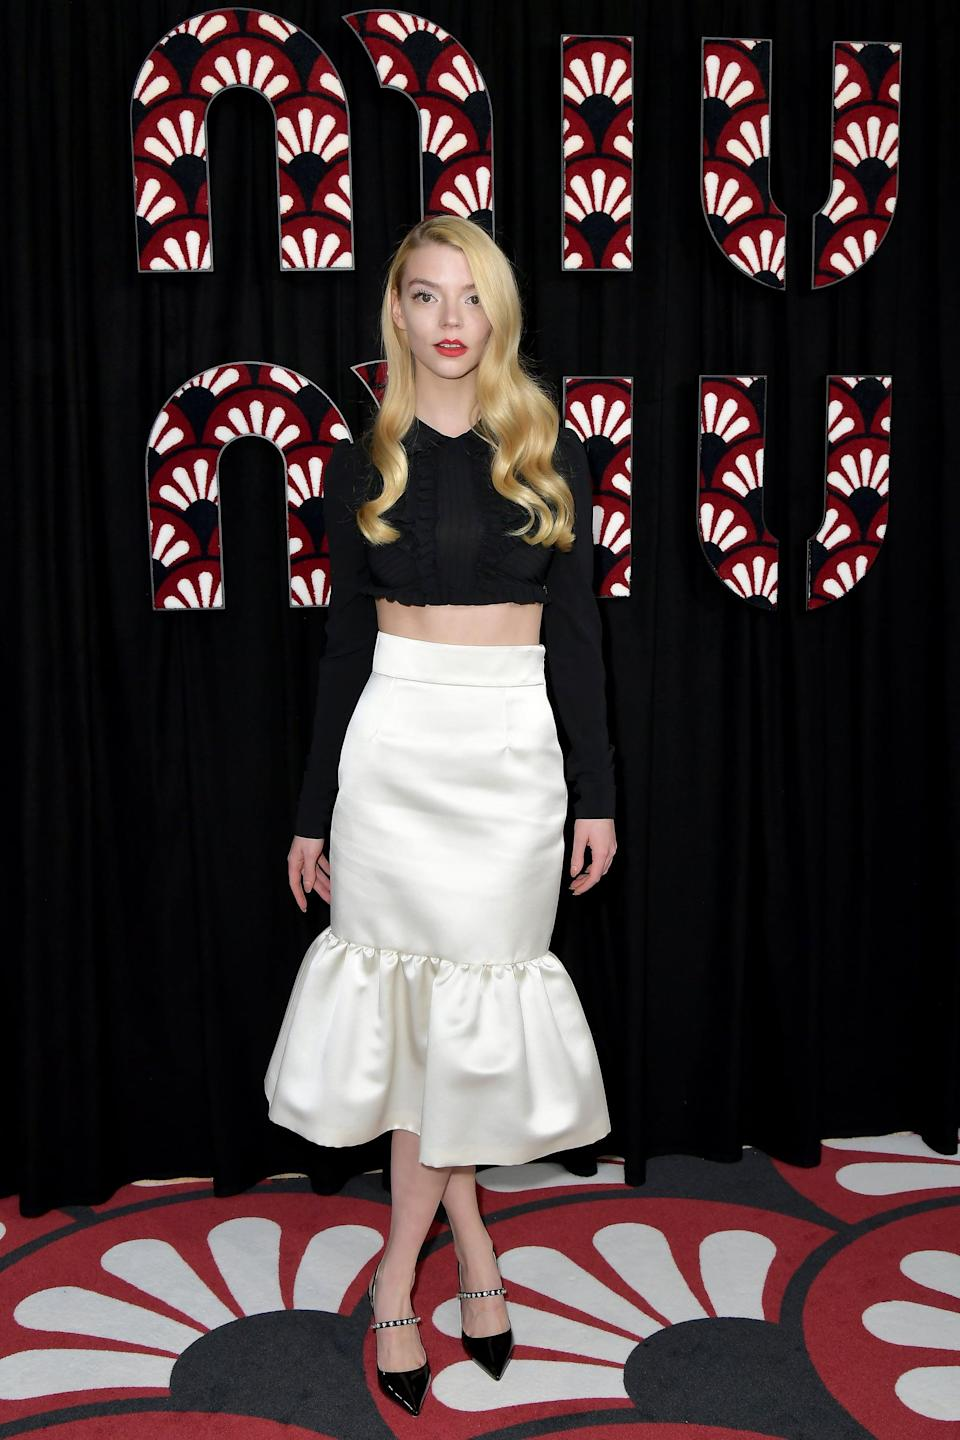 """<p>Anya attended the <a href=""""https://www.popsugar.com/fashion/miu-miu-fall-2020-collection-47274991"""" class=""""link rapid-noclick-resp"""" rel=""""nofollow noopener"""" target=""""_blank"""" data-ylk=""""slk:Miu Miu show at Paris Fashion Week"""">Miu Miu show at Paris Fashion Week</a> wearing separates from the label in March 2020.</p>"""